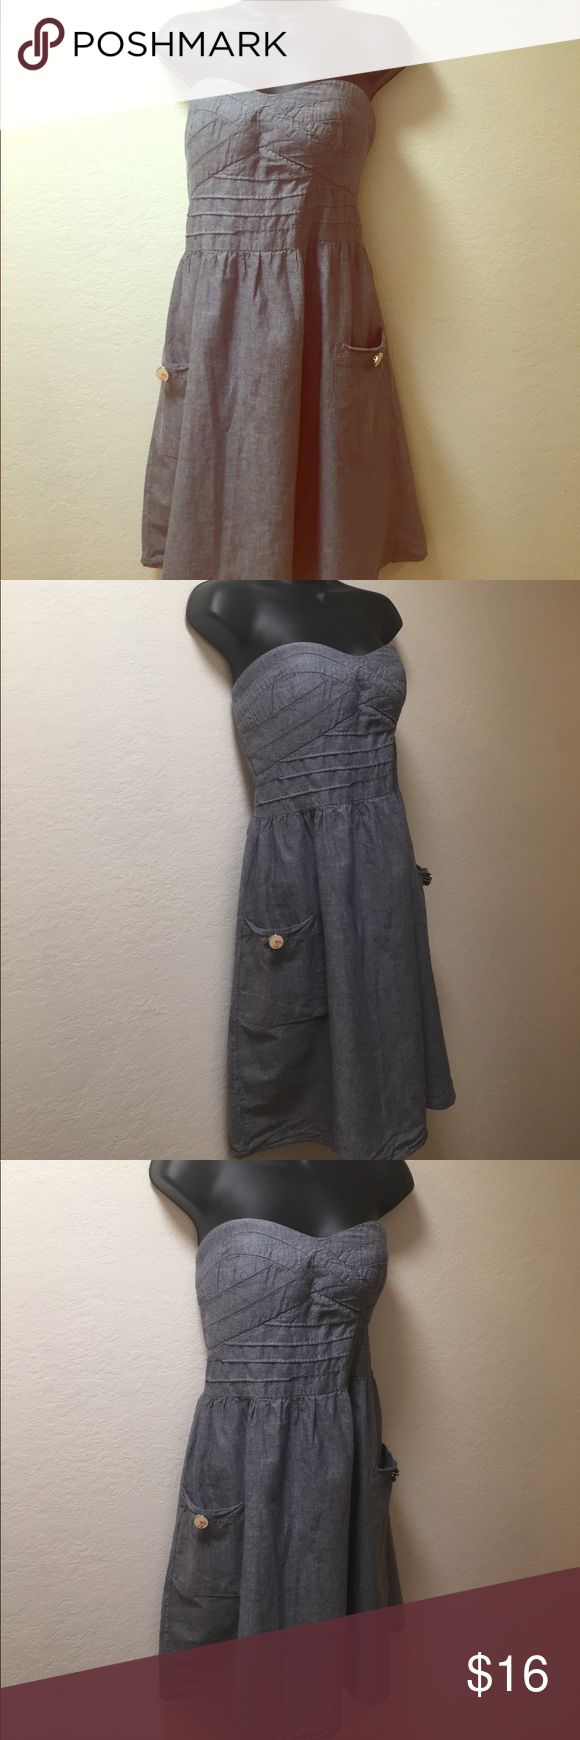 """Woman's Cute Strapless Dress Size 13 Woman's Cute Strapless Dress material: Cotton. Lining is Polyester. Has two pockets with cute buttons. Care Label: Machine wash cold. Size 13.  Fits waist 32""""inches Dress Length is 30 inches. Thank you for looking. Happy Poshing😊 Dresses"""